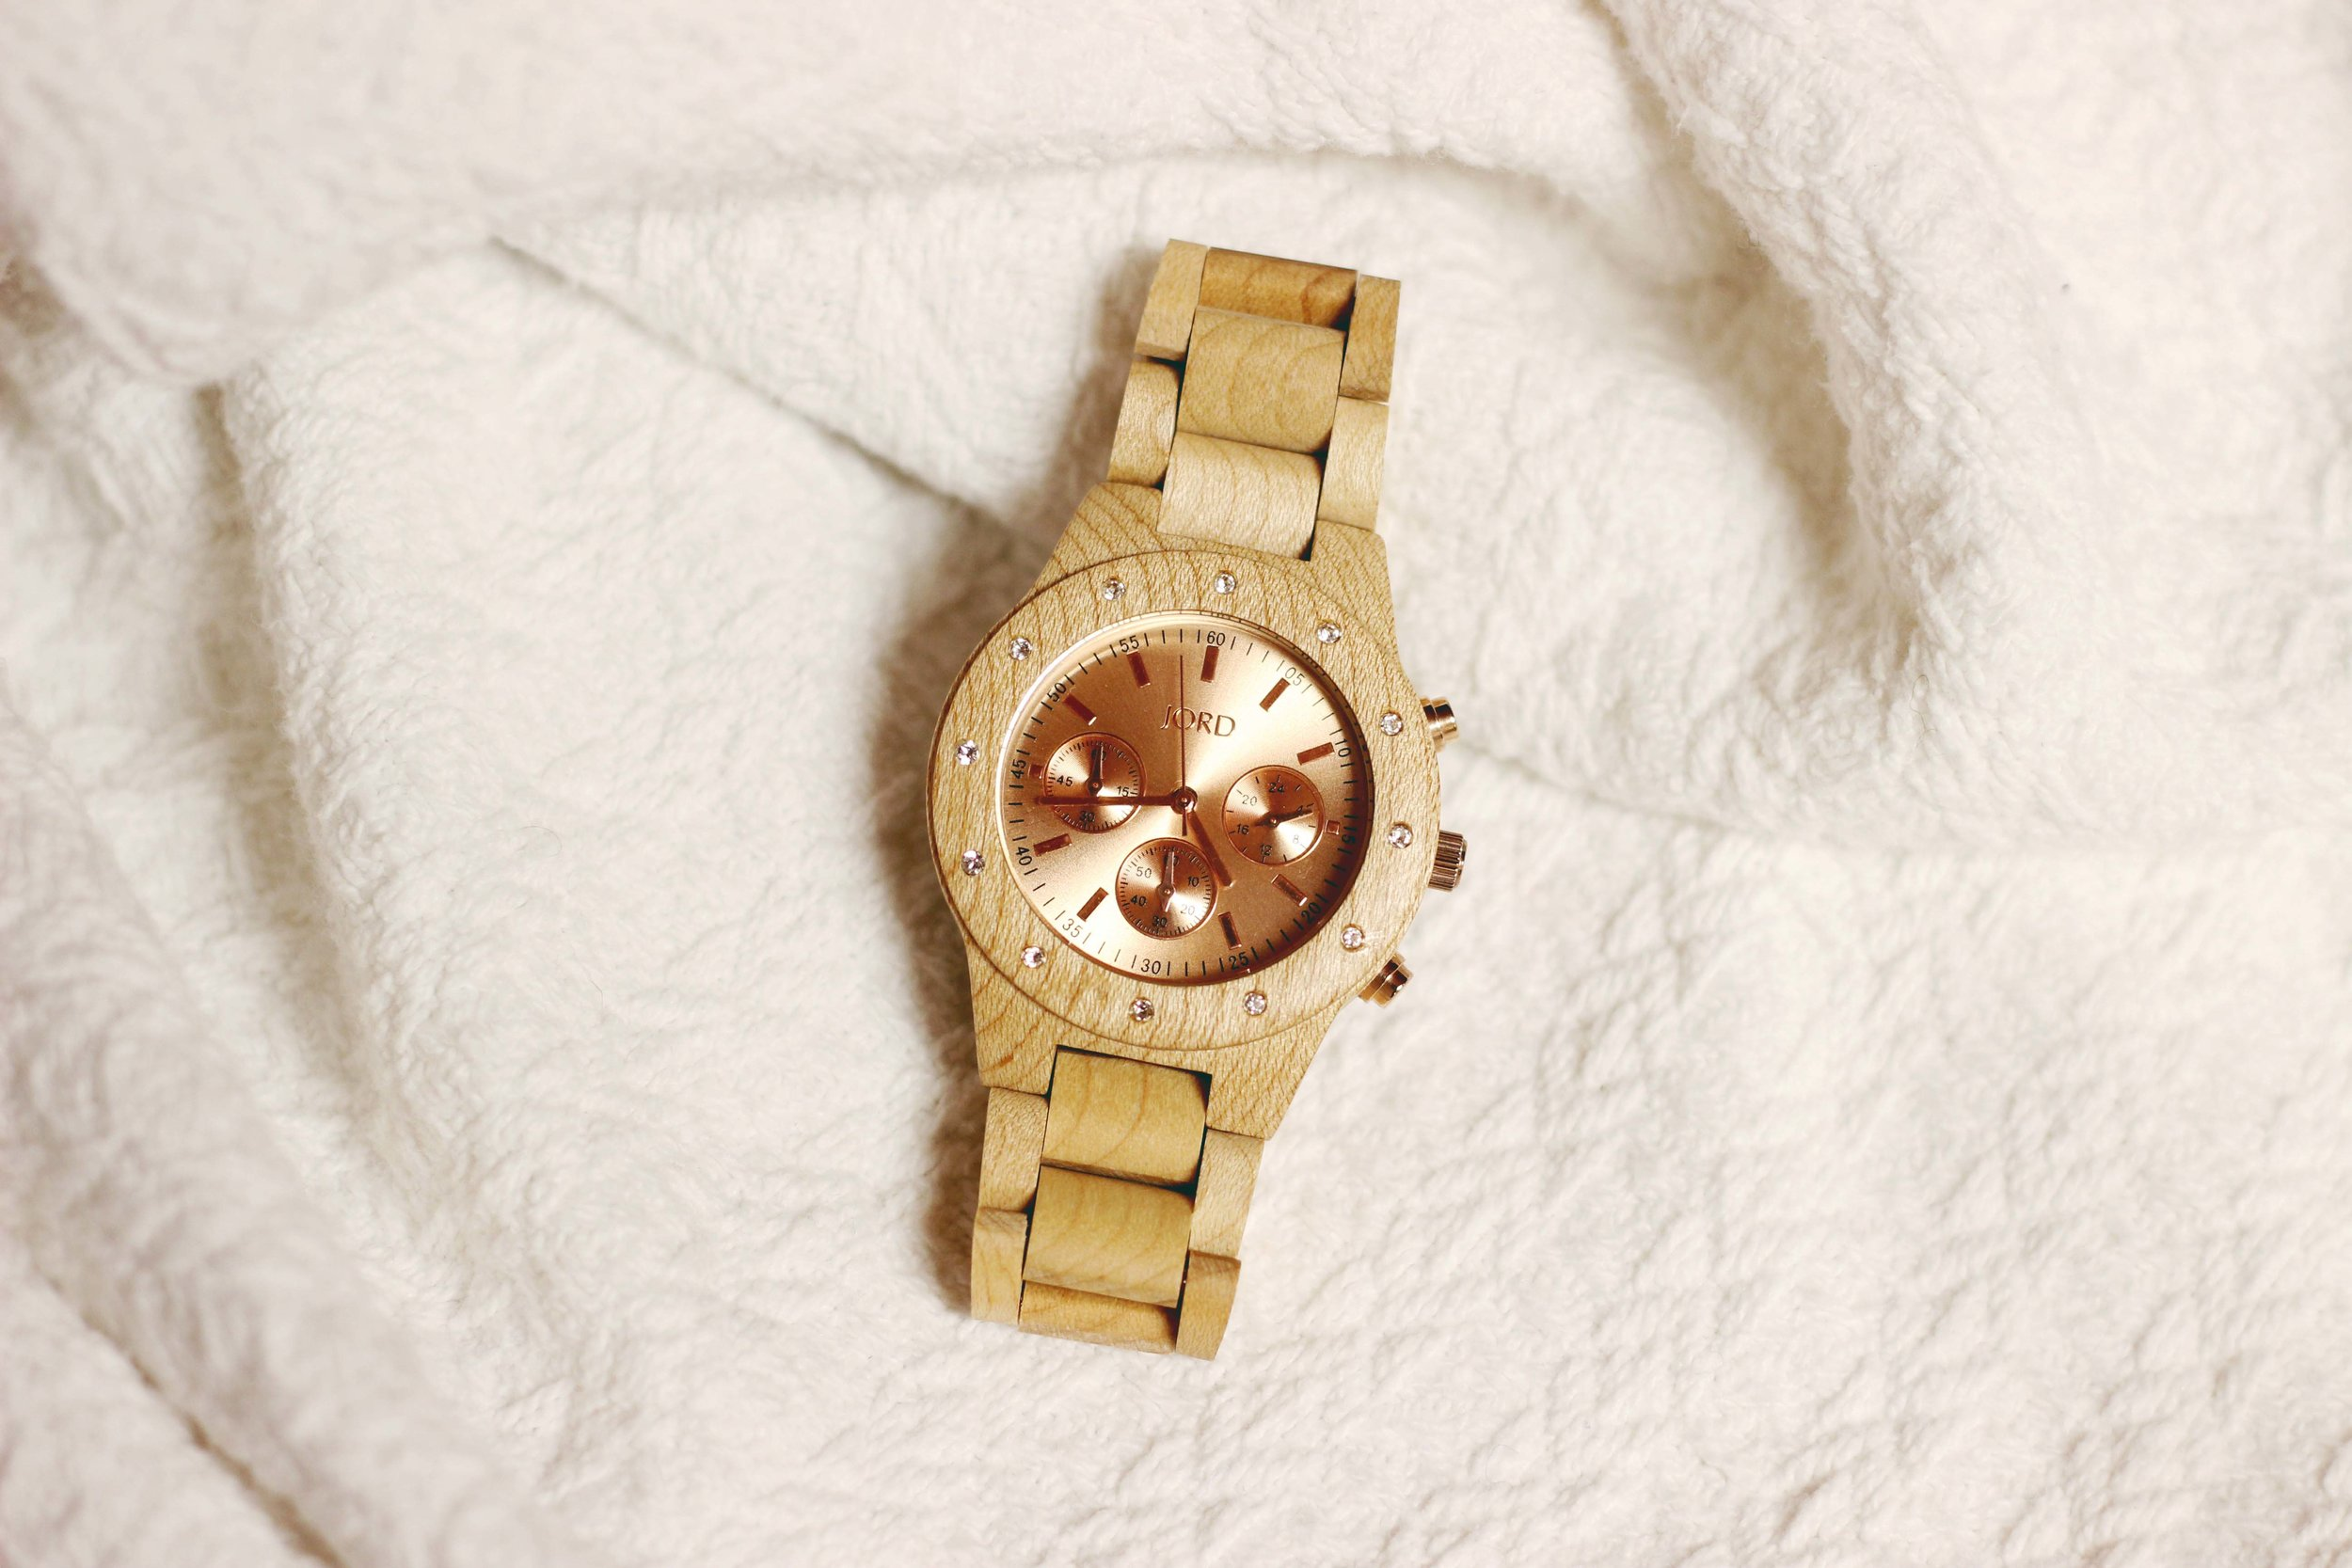 The perfect holiday gift for ladies! JORD WOOD WATCHES #JORDWATCH